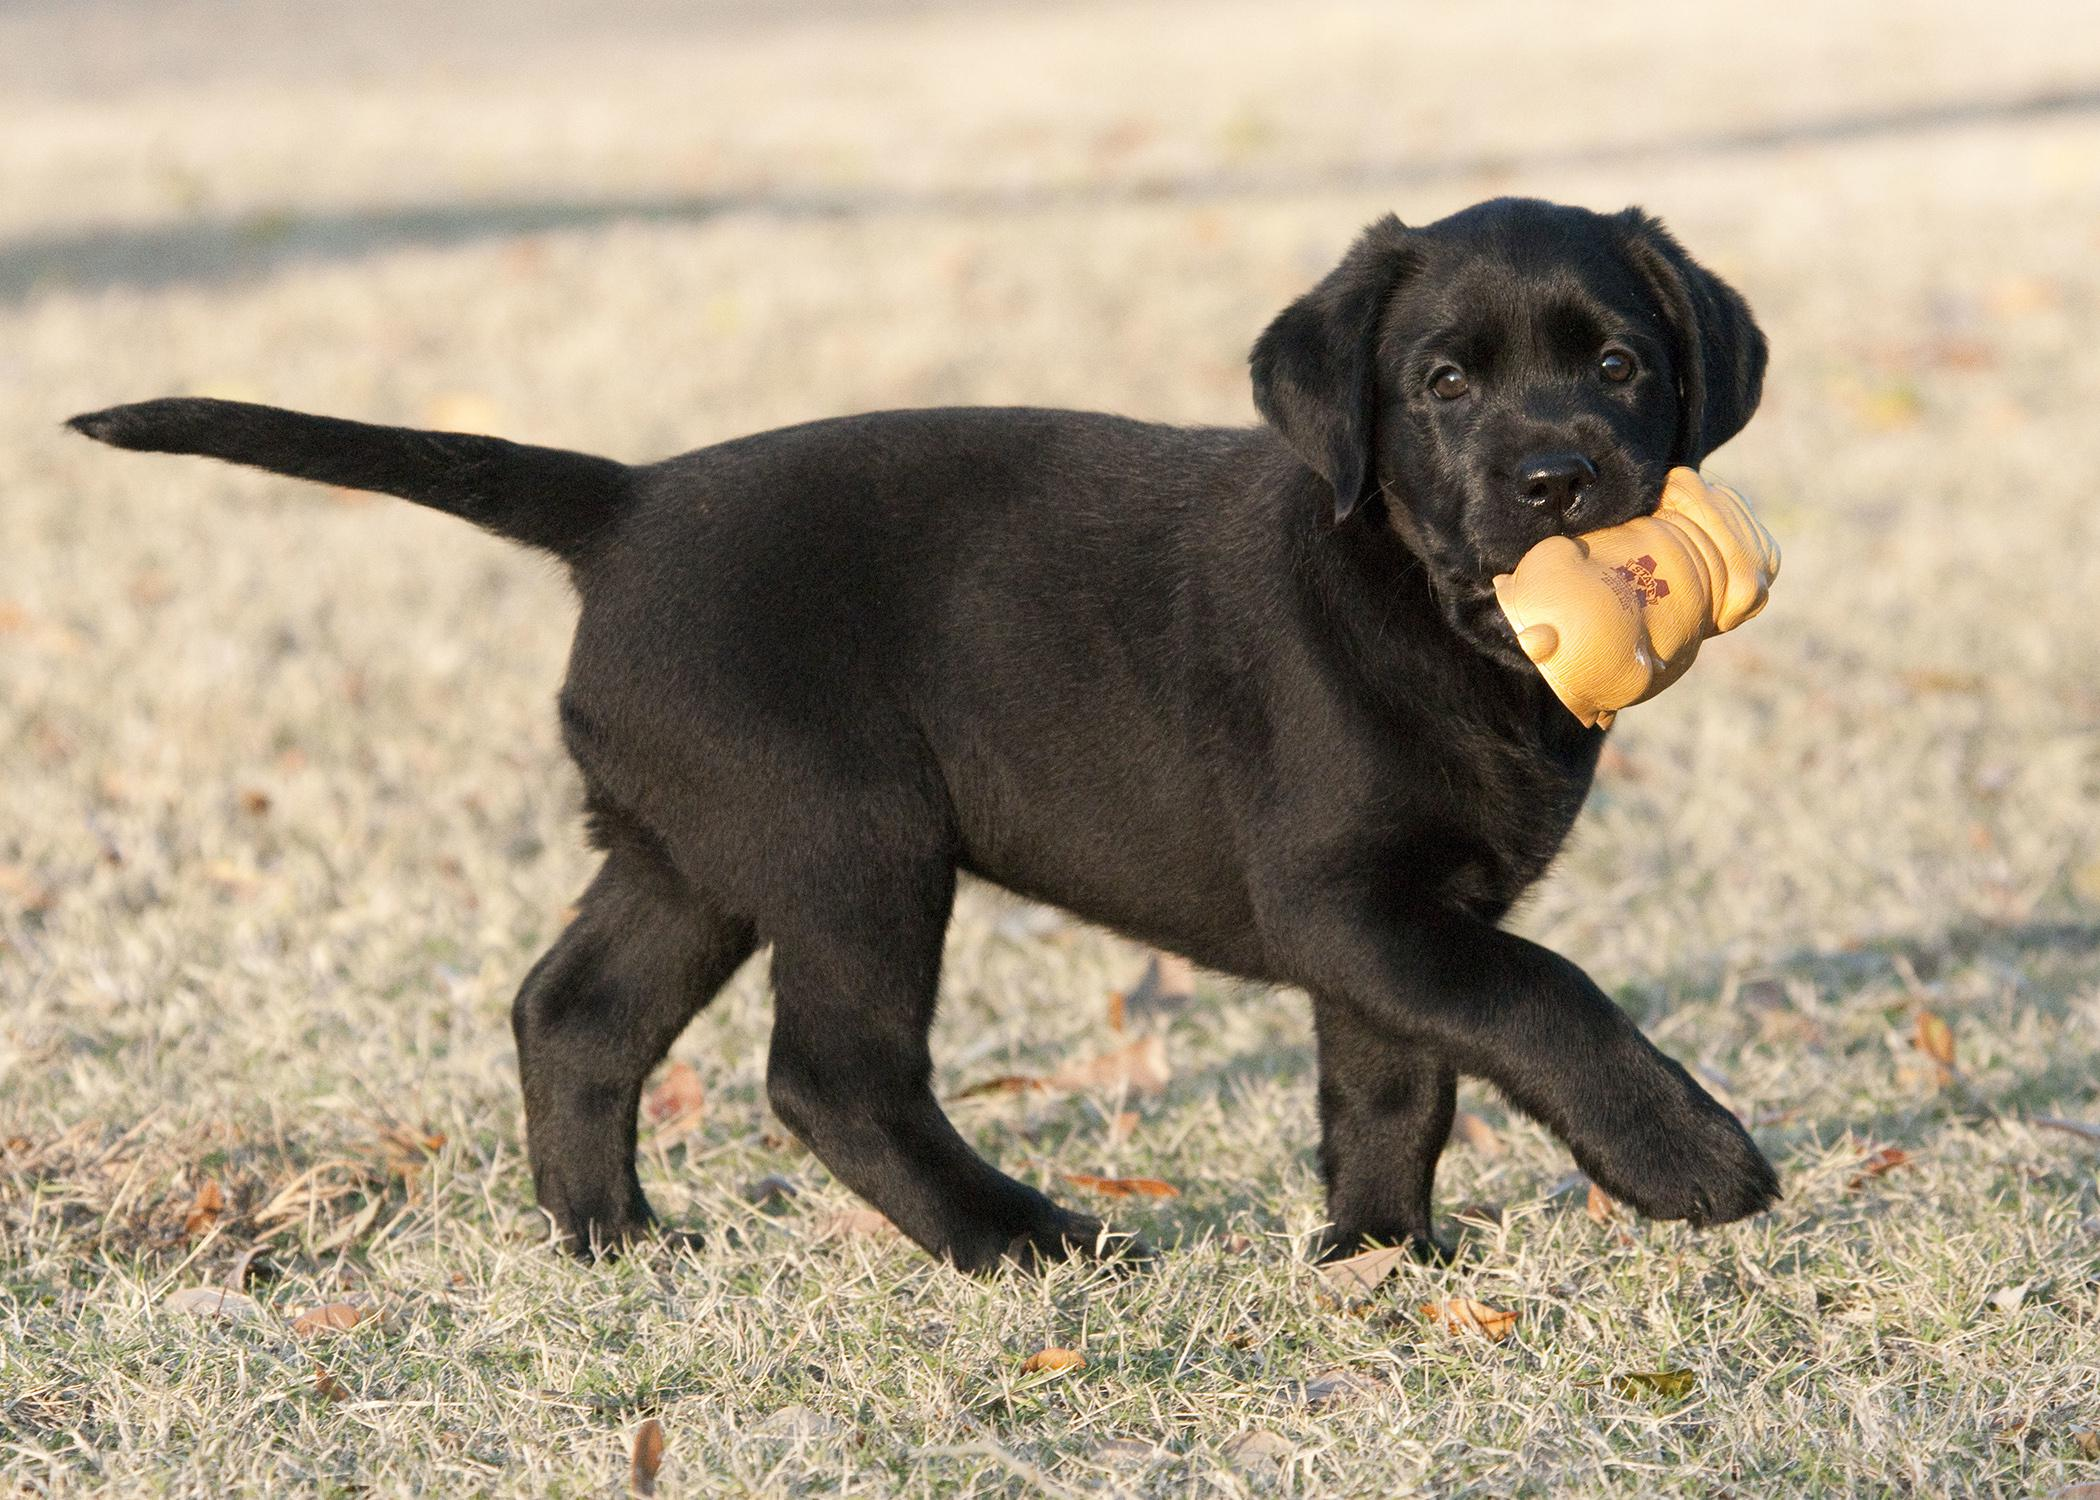 Dogs love to taste and chew on many things, so owners should take extra precautions to protect their pets from poisons, a leading cause of emergency trips to veterinary clinics each year. (File photo by MSU College of Veterinary Medicine/Tom Thompson)